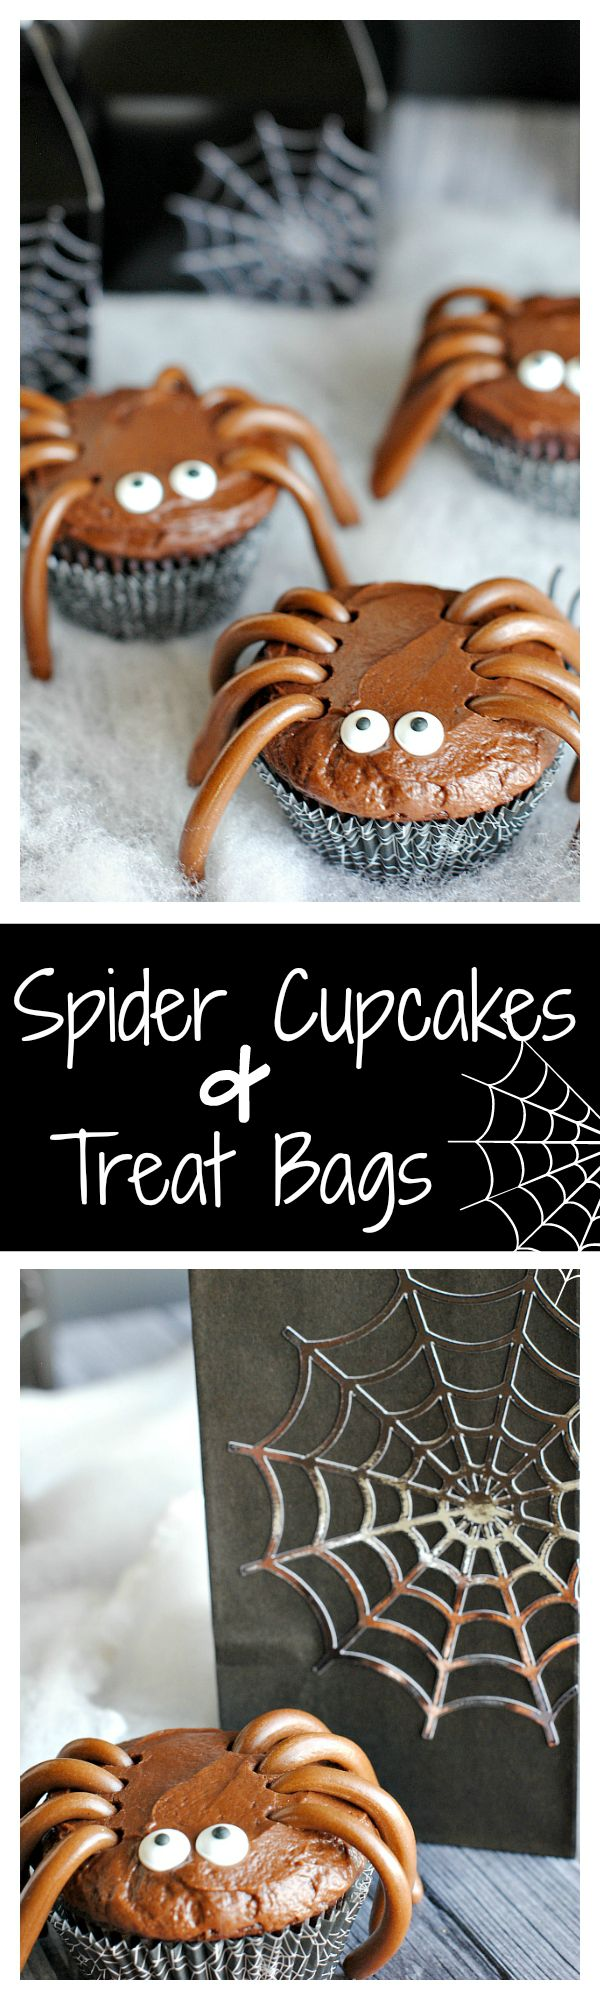 17 Best images about Halloween Crafts on Pinterest | Treat bags ...